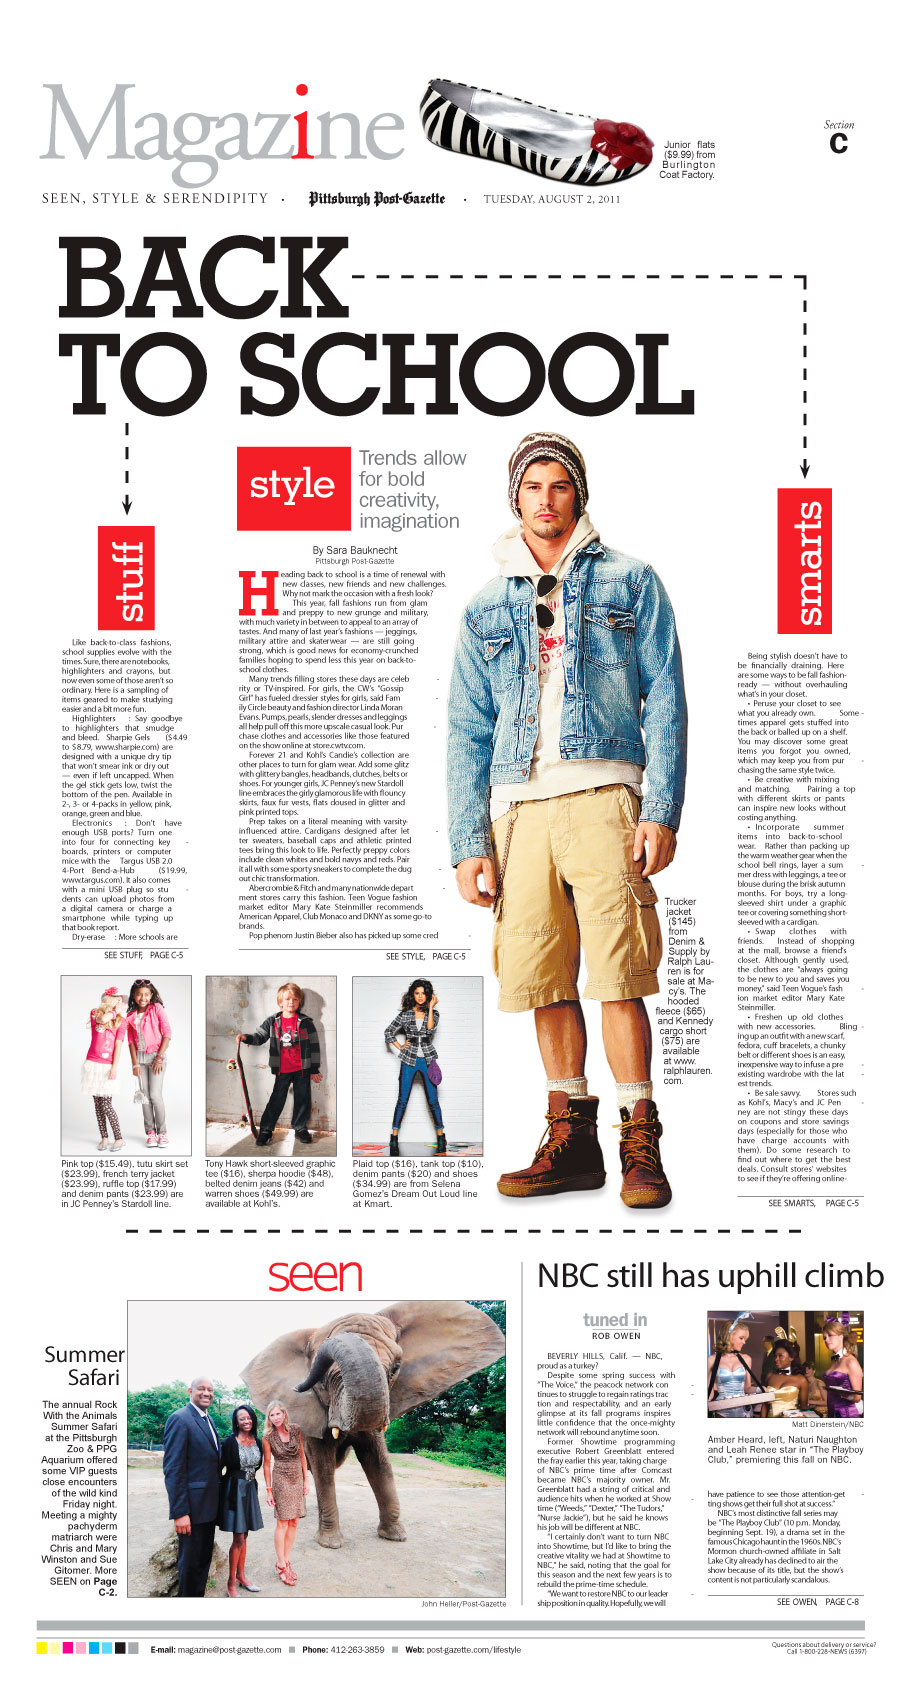 Magazine section front, back to school feature